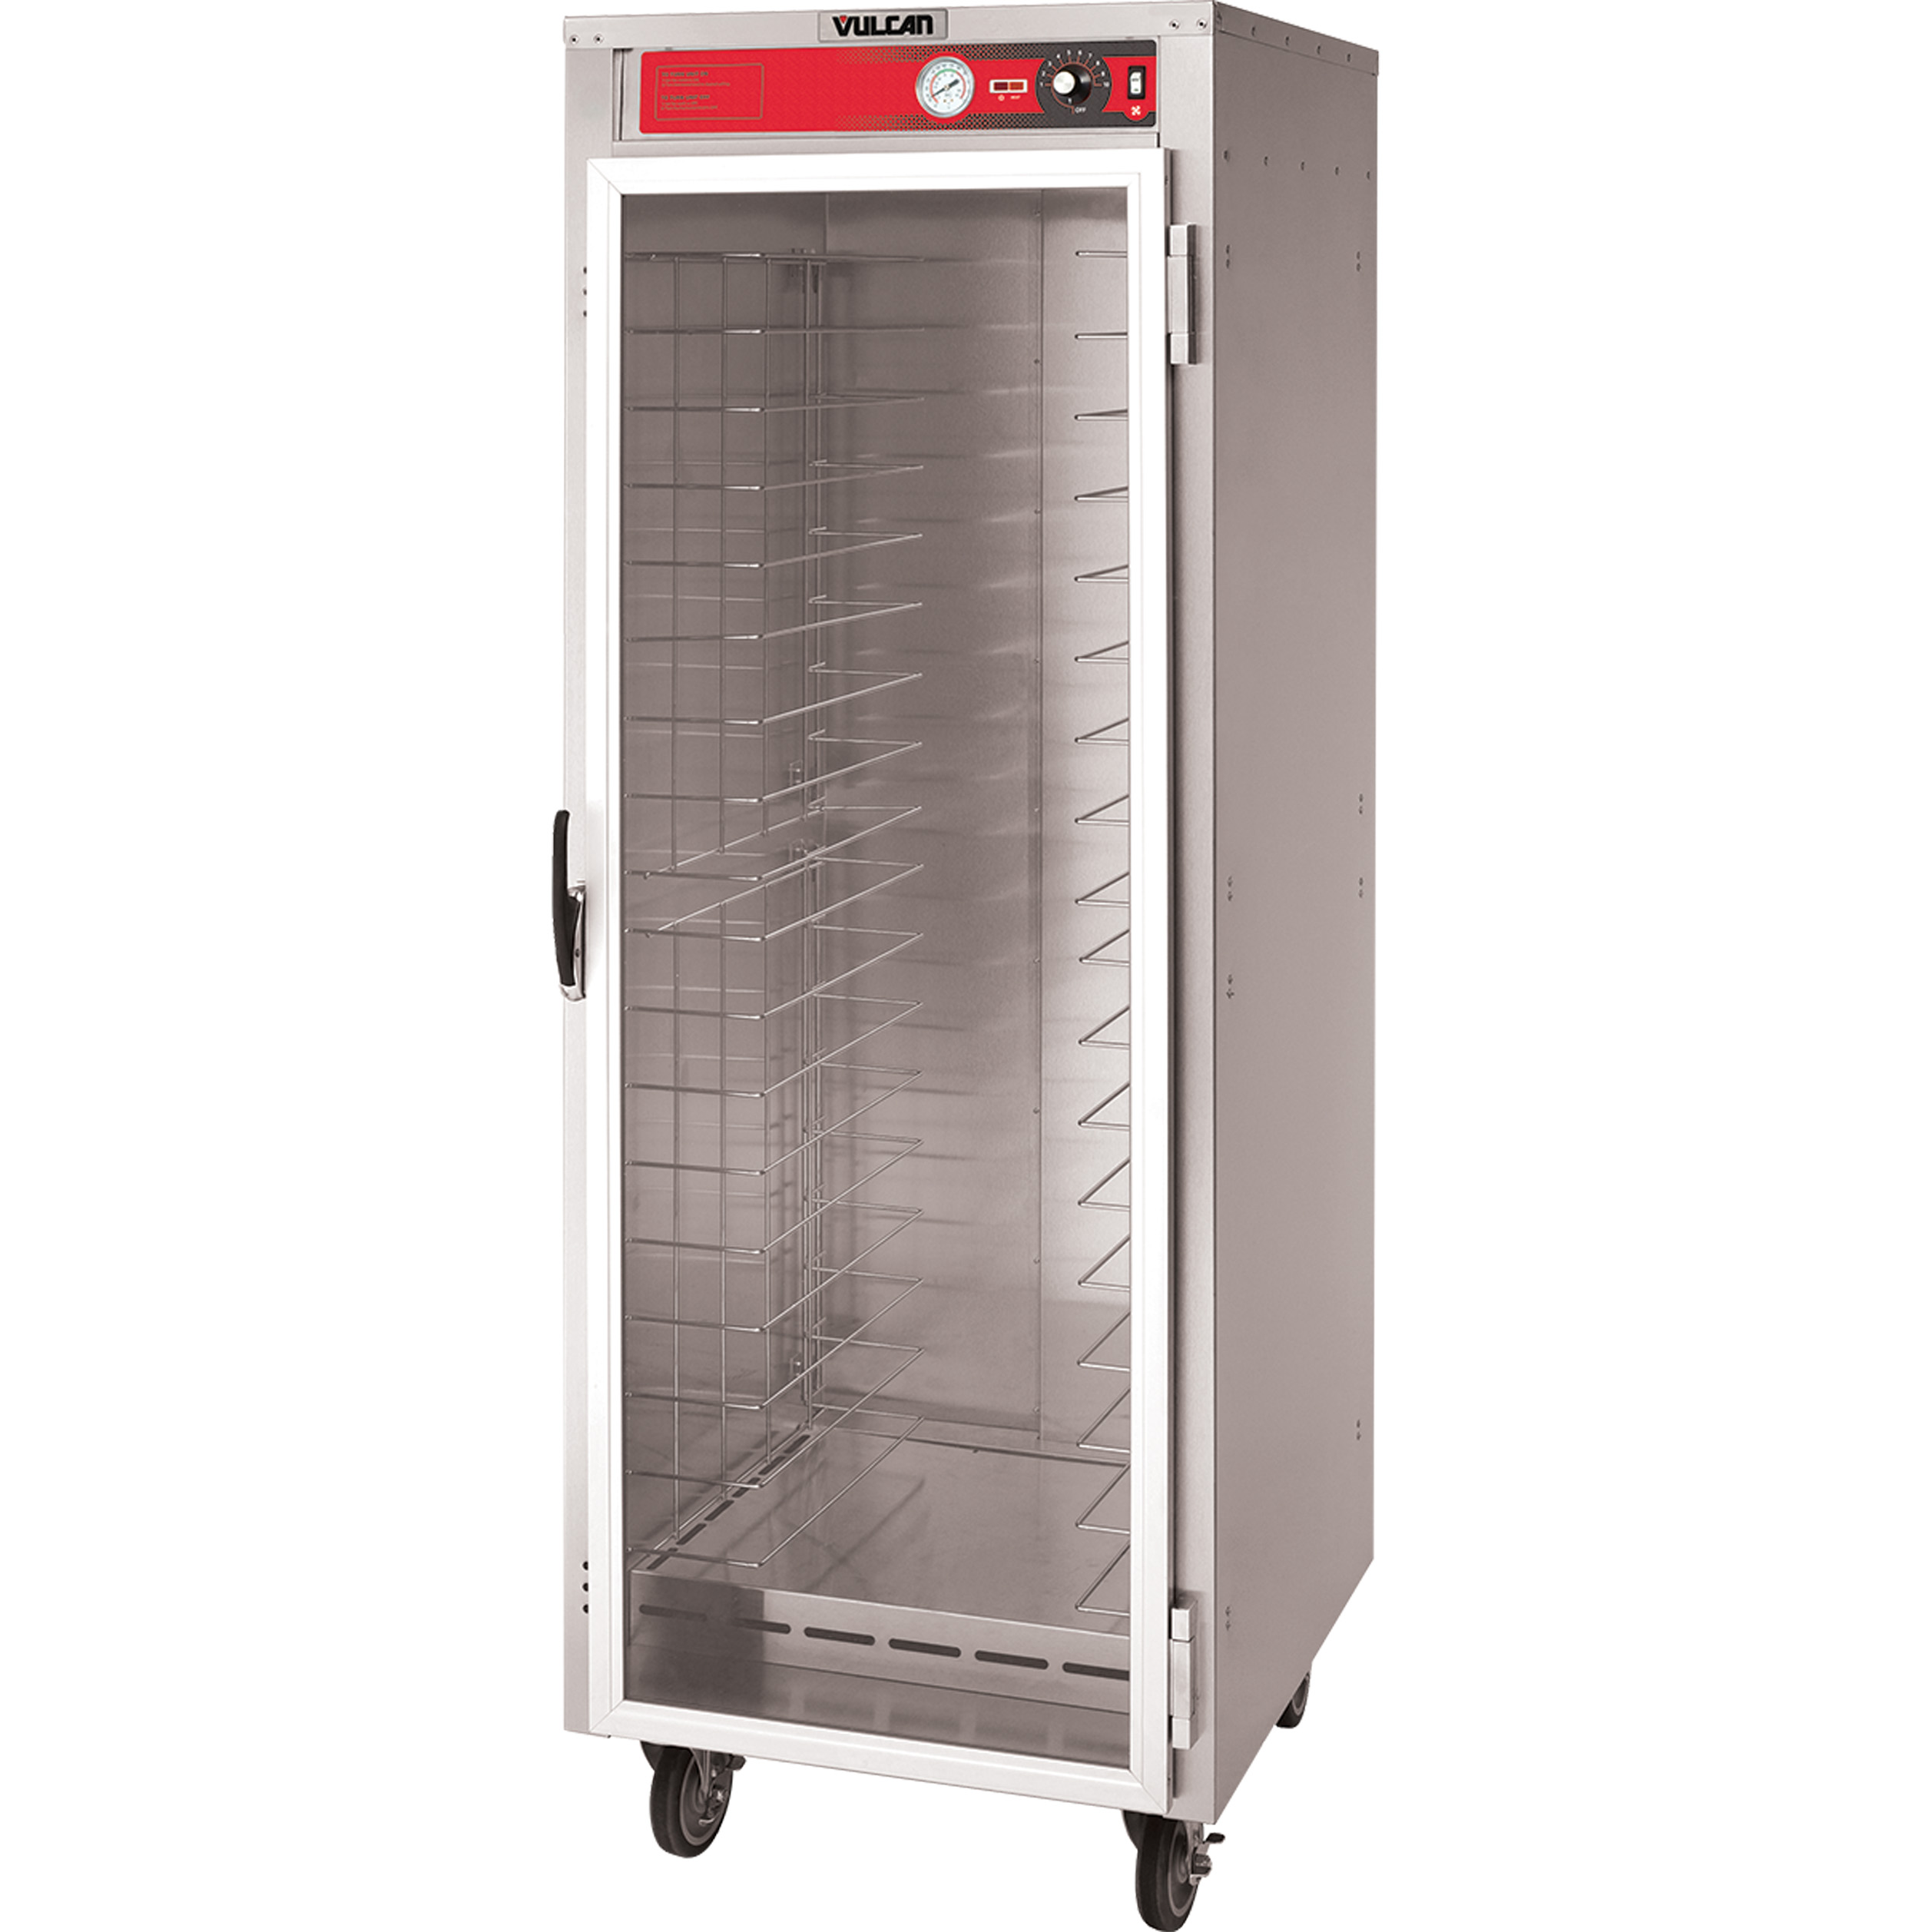 Vulcan VHFA9 heated cabinet, mobile